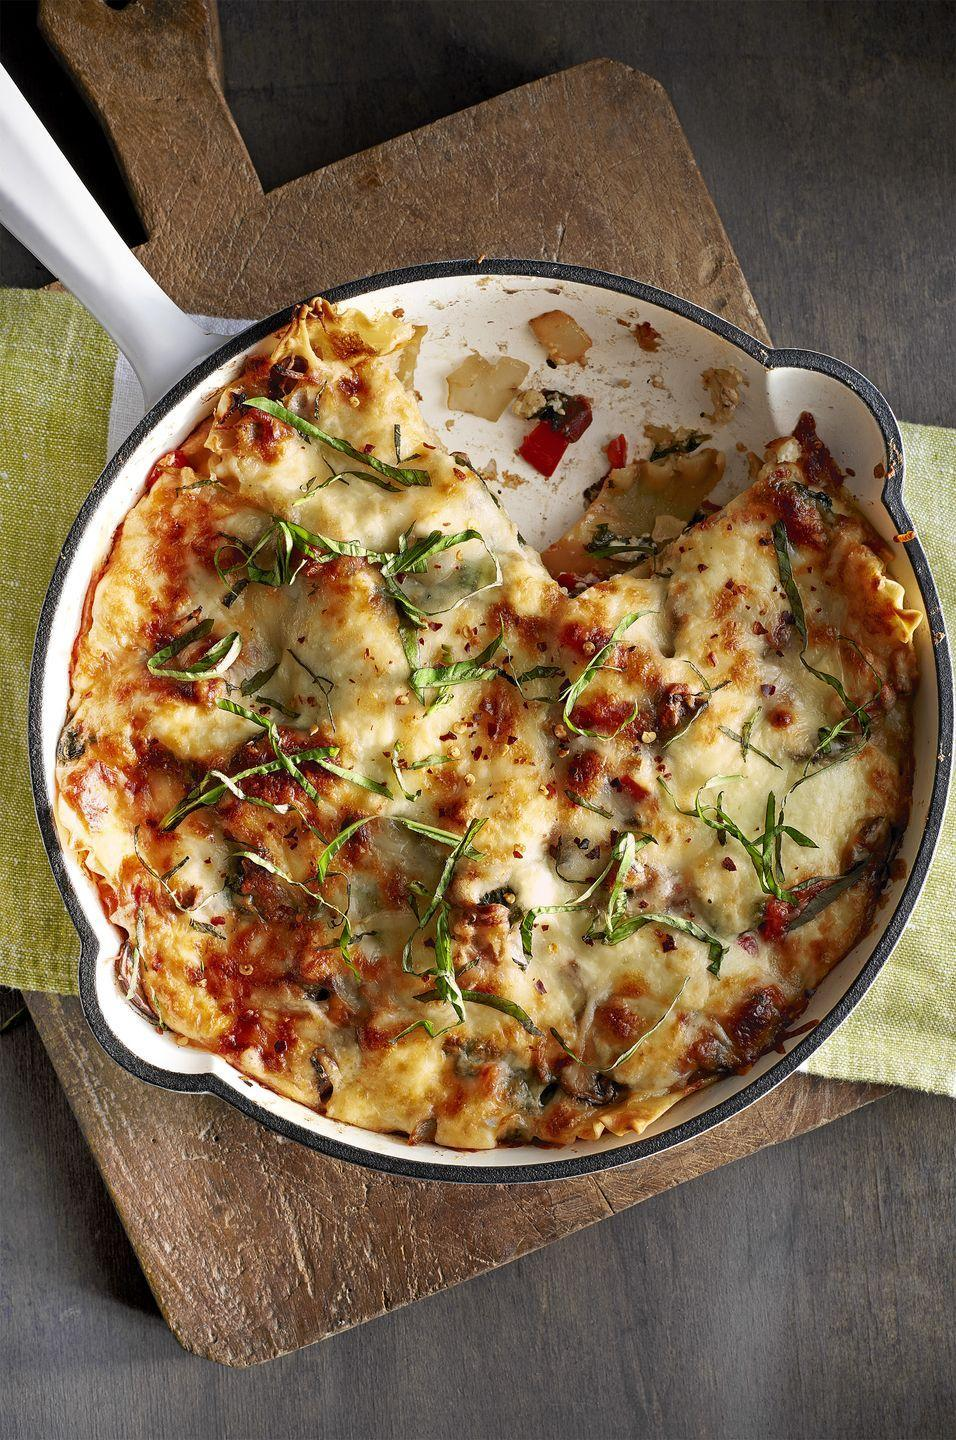 """<p>For cold winter nights, this hearty, meat-free lasagna recipe is the perfect way to warm up.</p><p><strong><a href=""""https://www.countryliving.com/food-drinks/recipes/a343/skillet-mushroom-spinach-lasagna-recipe-clx0215/"""" rel=""""nofollow noopener"""" target=""""_blank"""" data-ylk=""""slk:Get the recipe."""" class=""""link rapid-noclick-resp"""">Get the recipe.</a></strong></p>"""